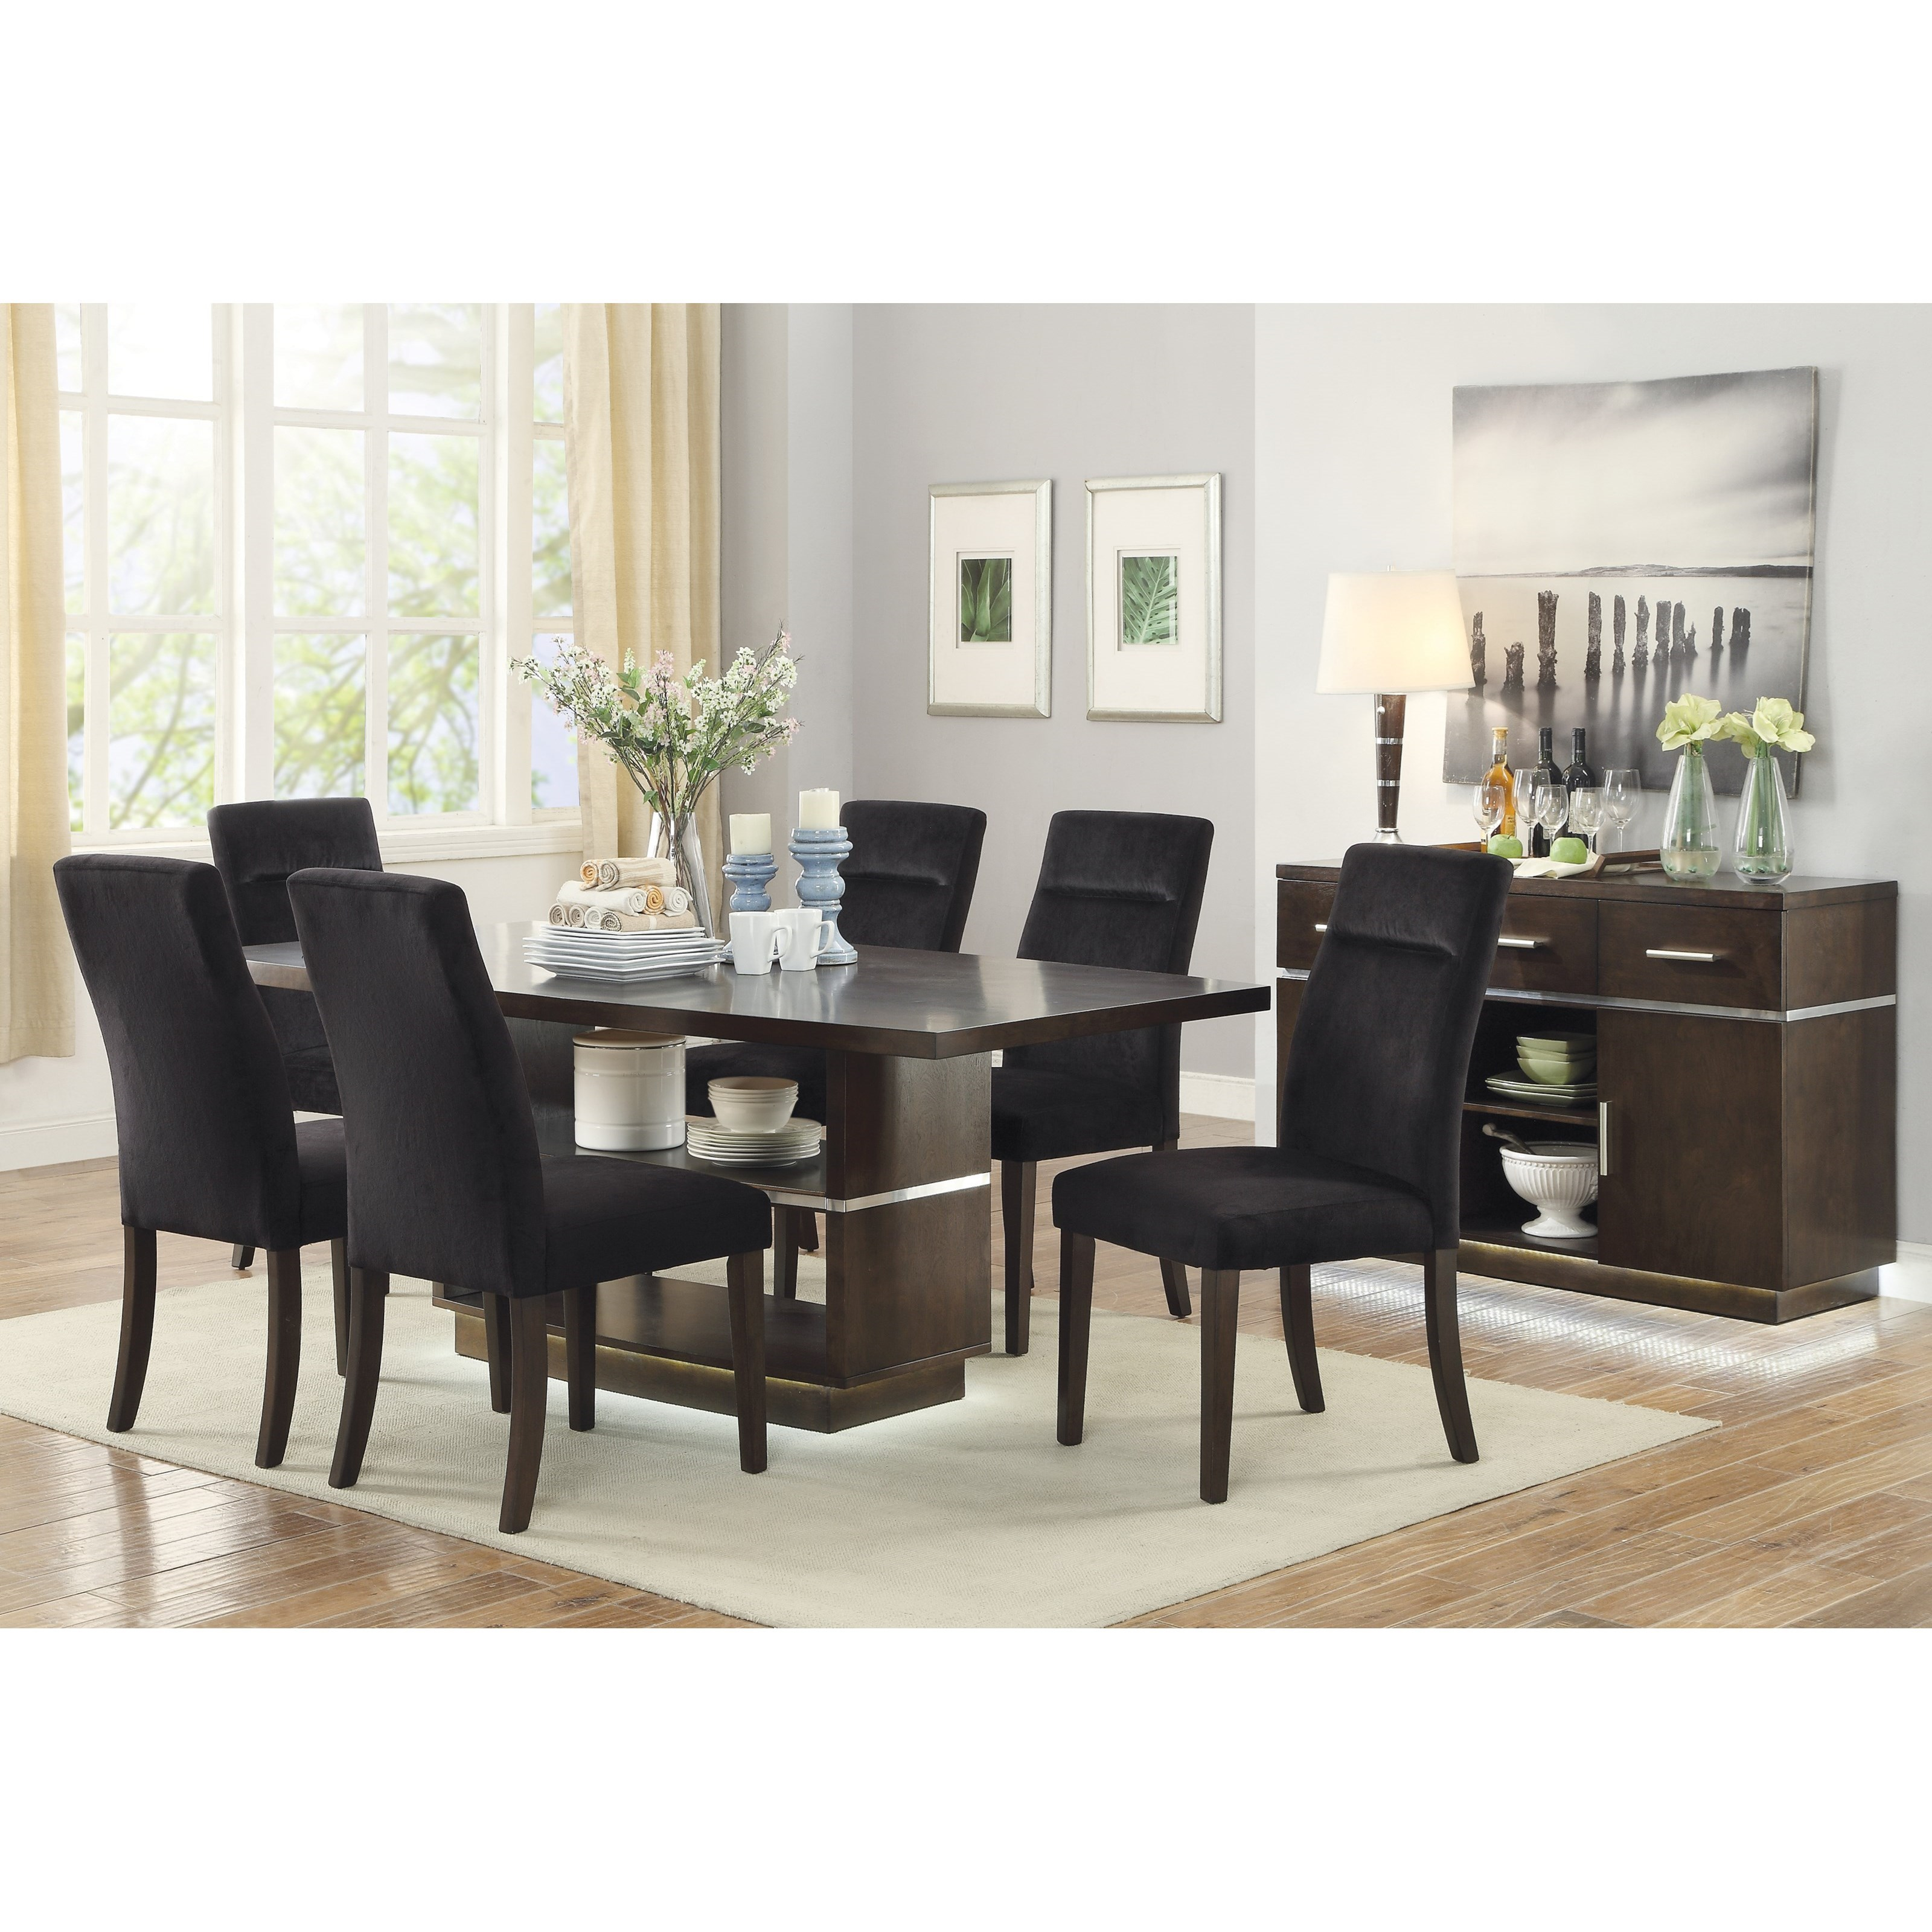 Coaster Lincoln Upholstered Dining Chair A1 Furniture Mattress Dining Side Chairs